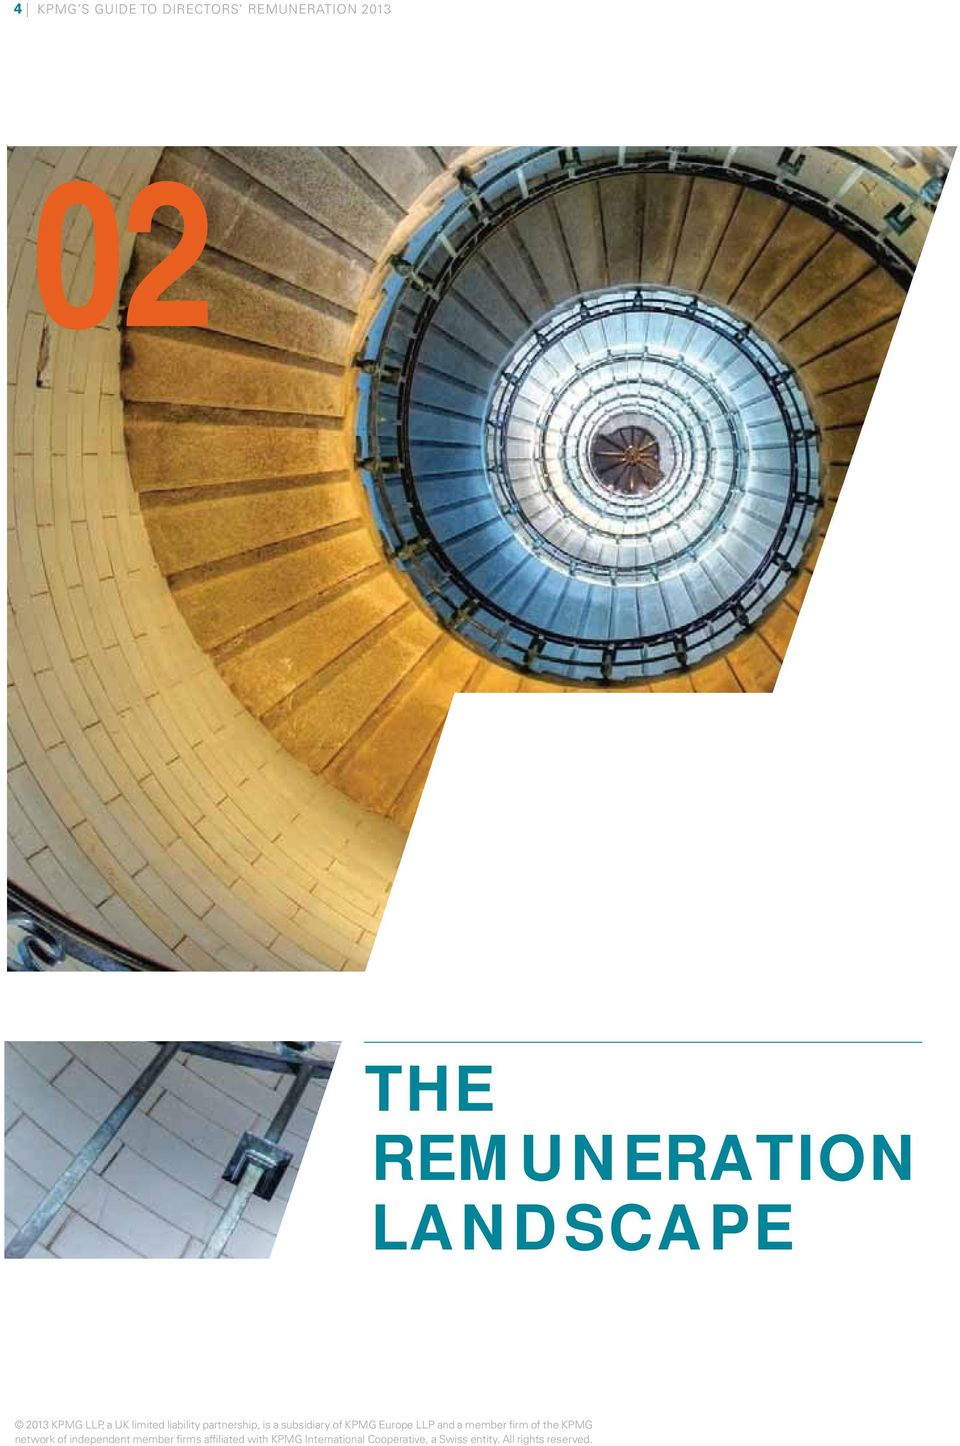 REMUNERATION 2013